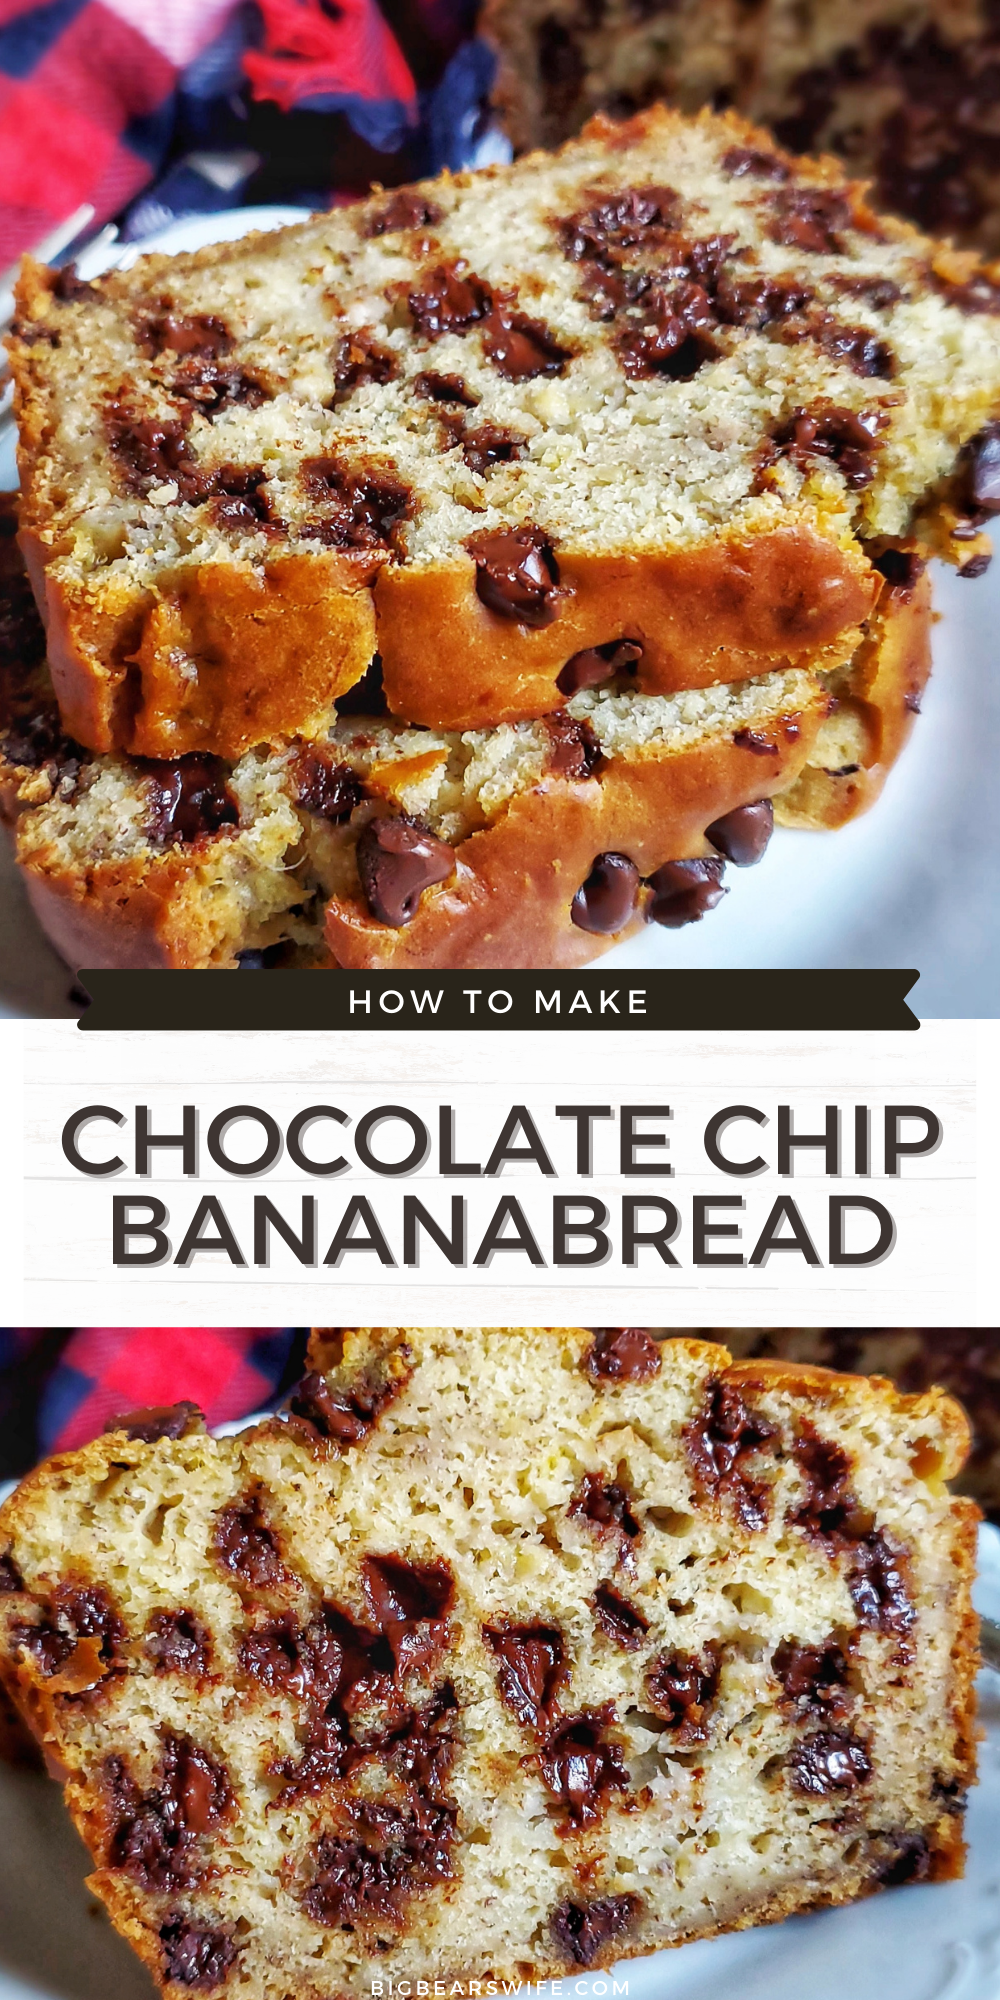 Love Banana Bread? This Chocolate Chip Banana Bread is a delicious homemade banana bread recipe that is packed with 2 cups of chocolate chips! Amazing for breakfast, dessert or a snack!  via @bigbearswife